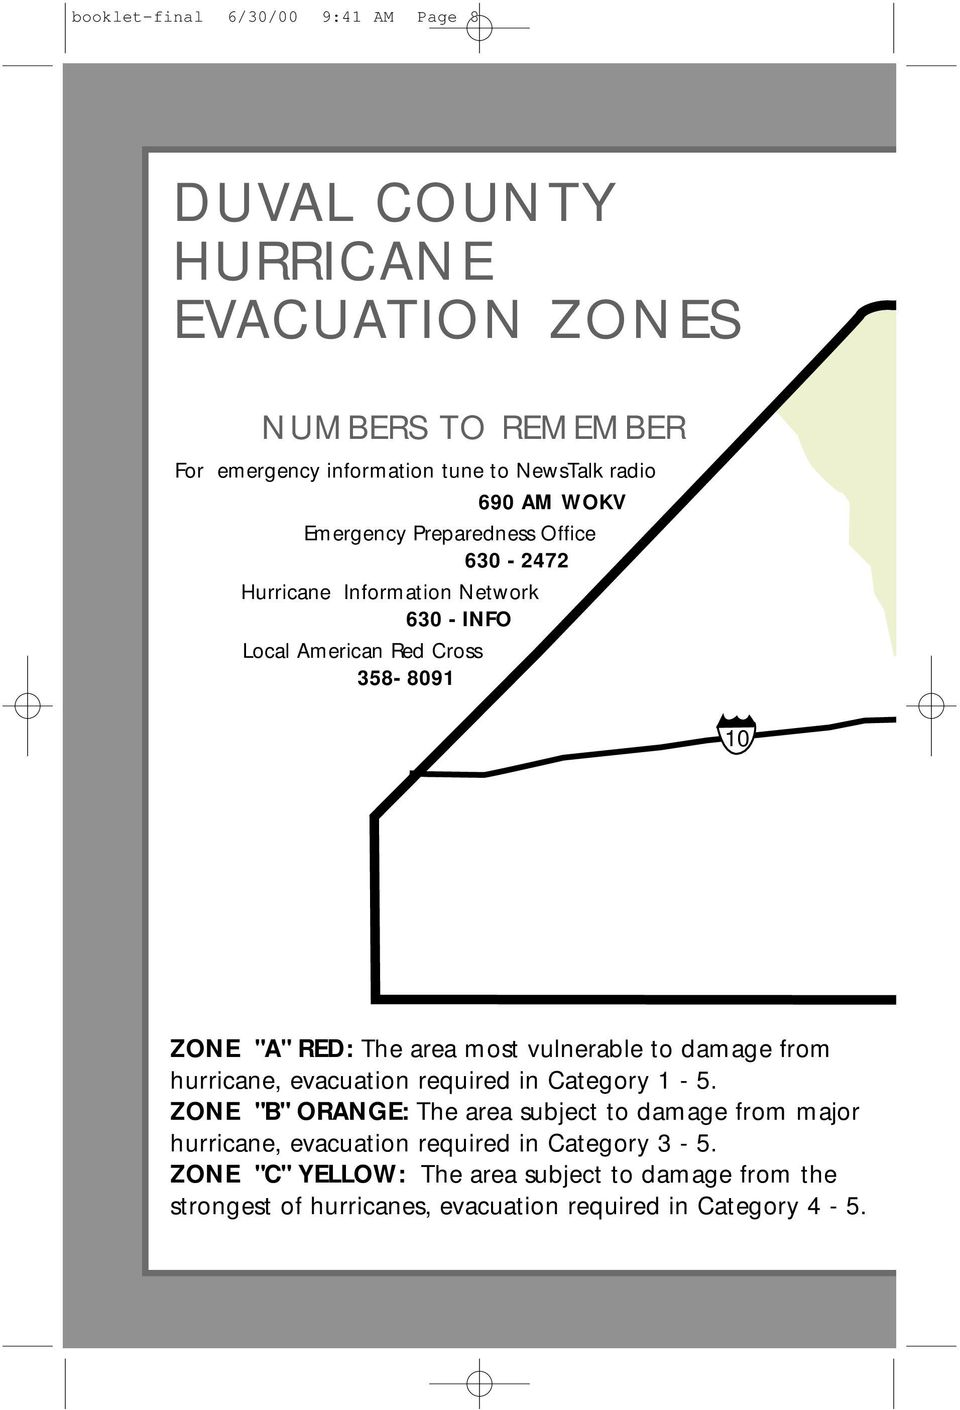 area most vulnerable to damage from hurricane, evacuation required in Category 1-5.